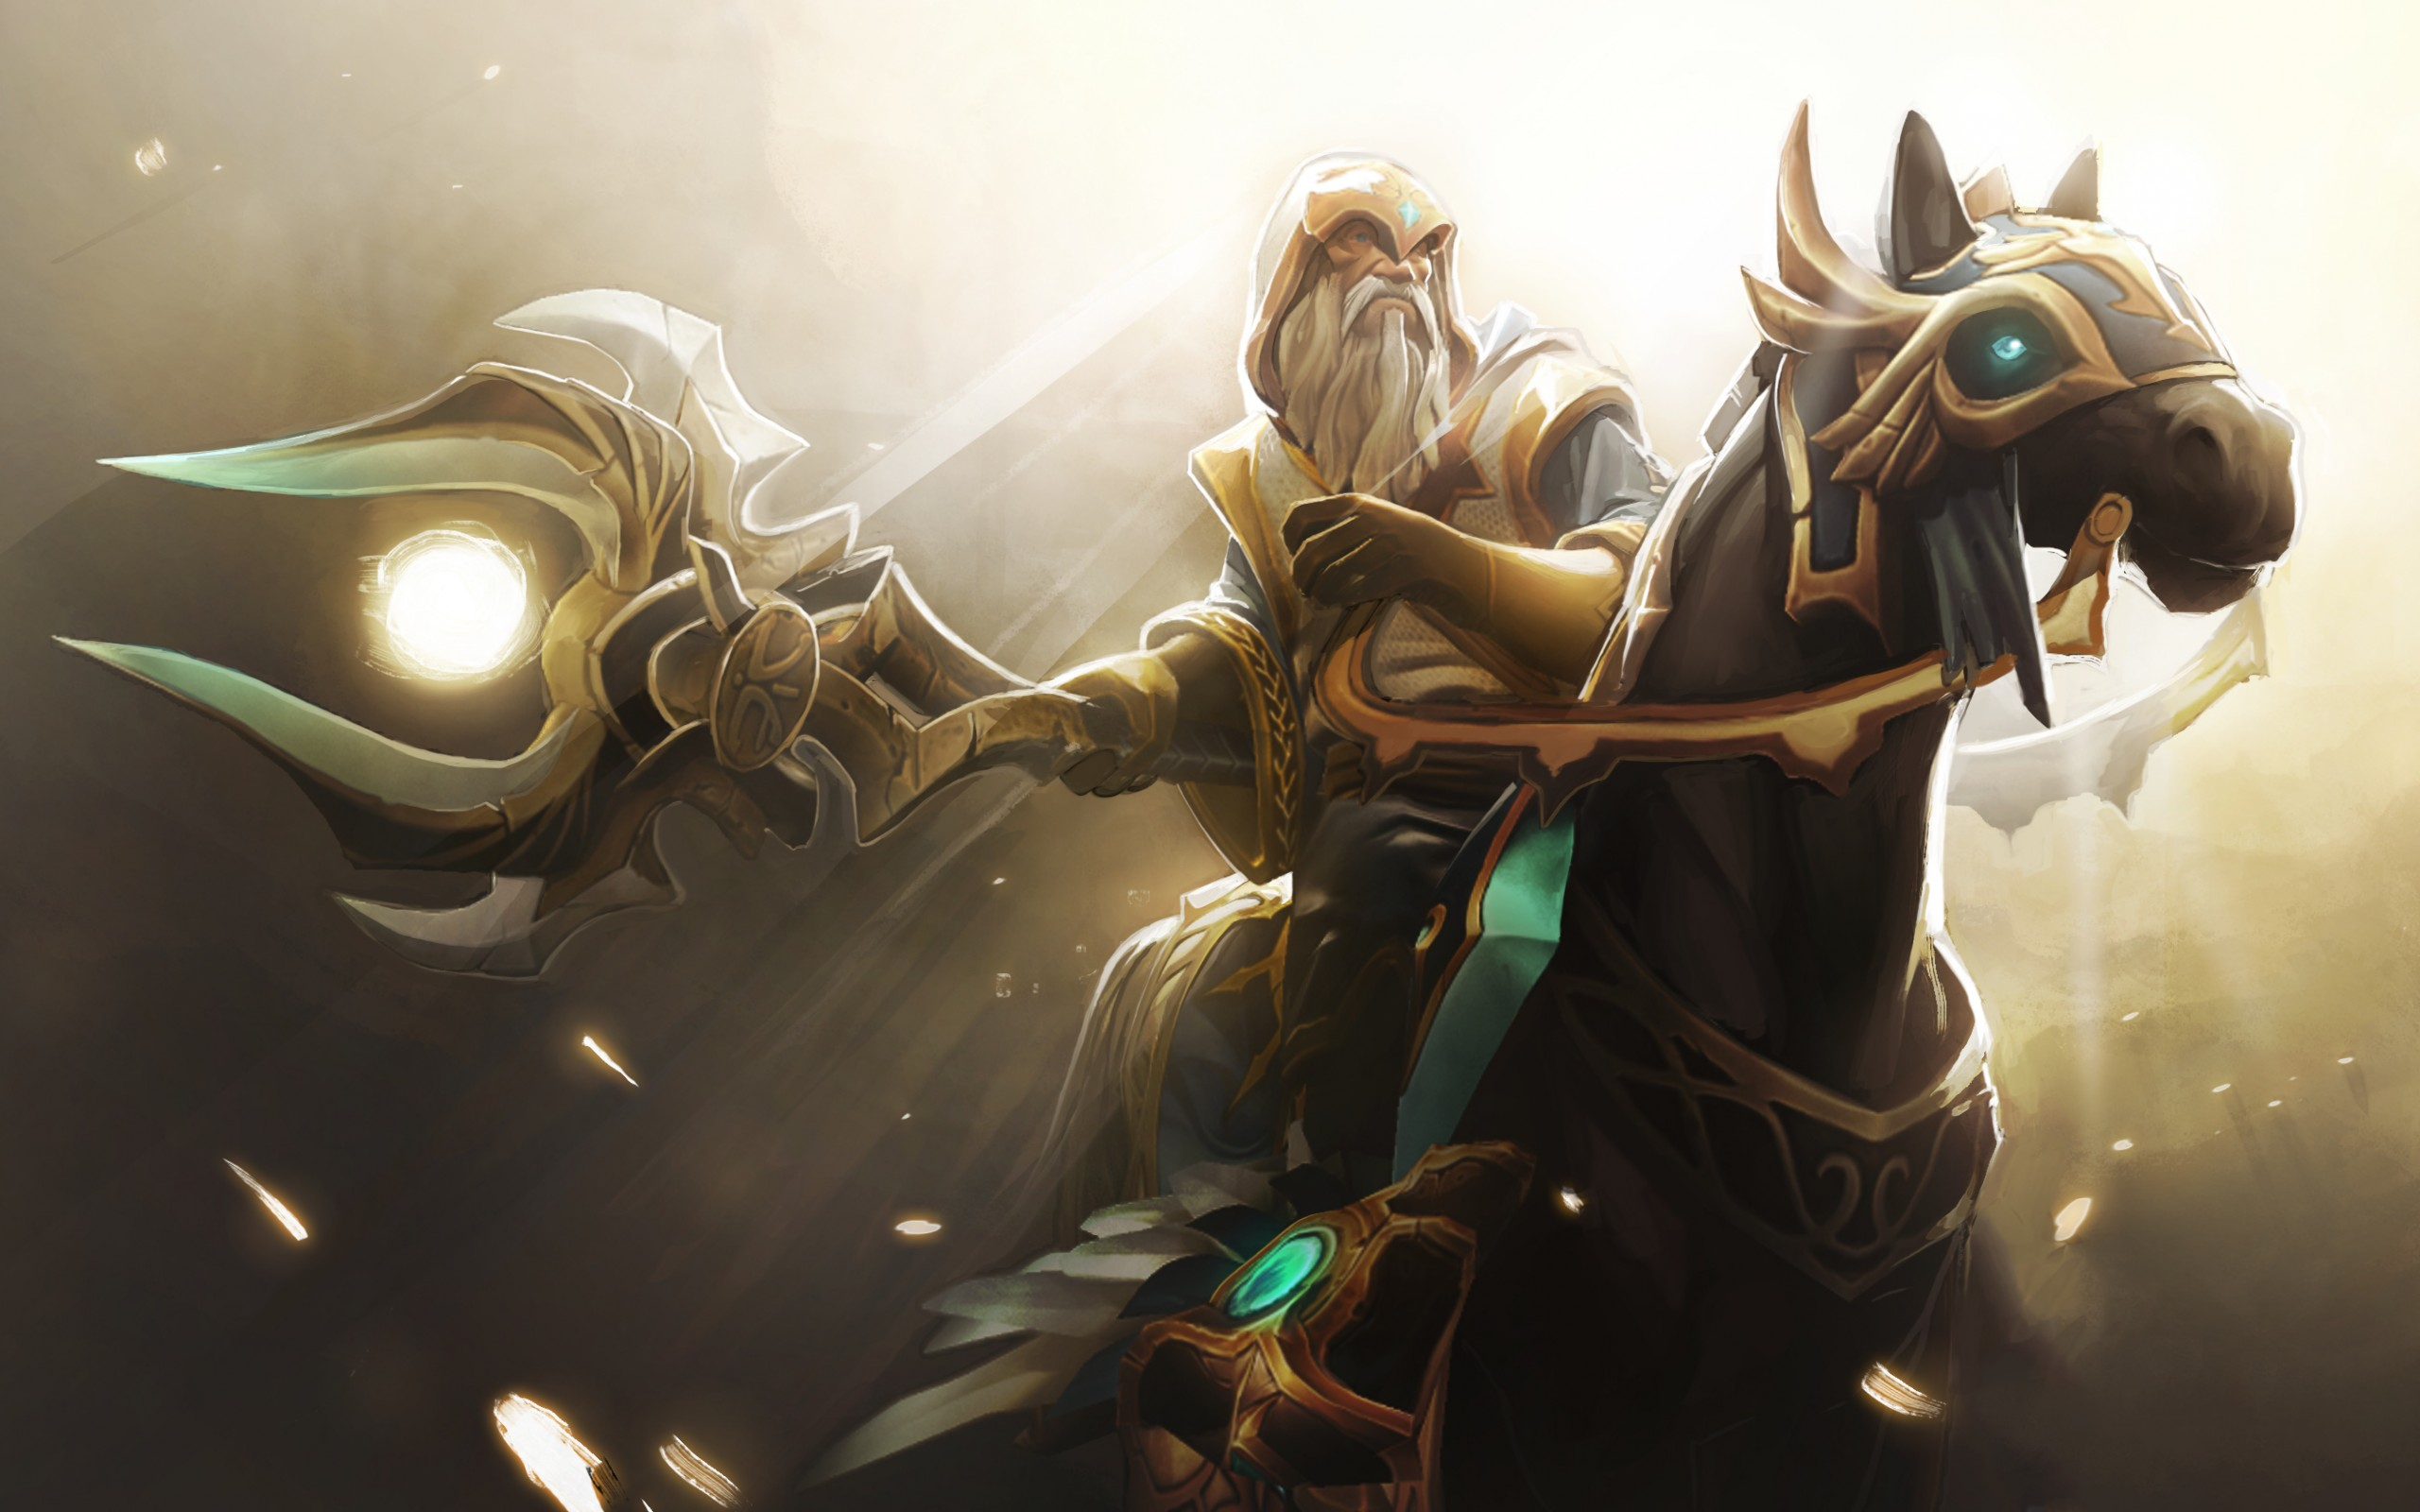 Ezalor, The Keeper of the Light, Котл обои на рабочий стол Дота 2 |  Wallpapers Dota 2 private collection, Background Image